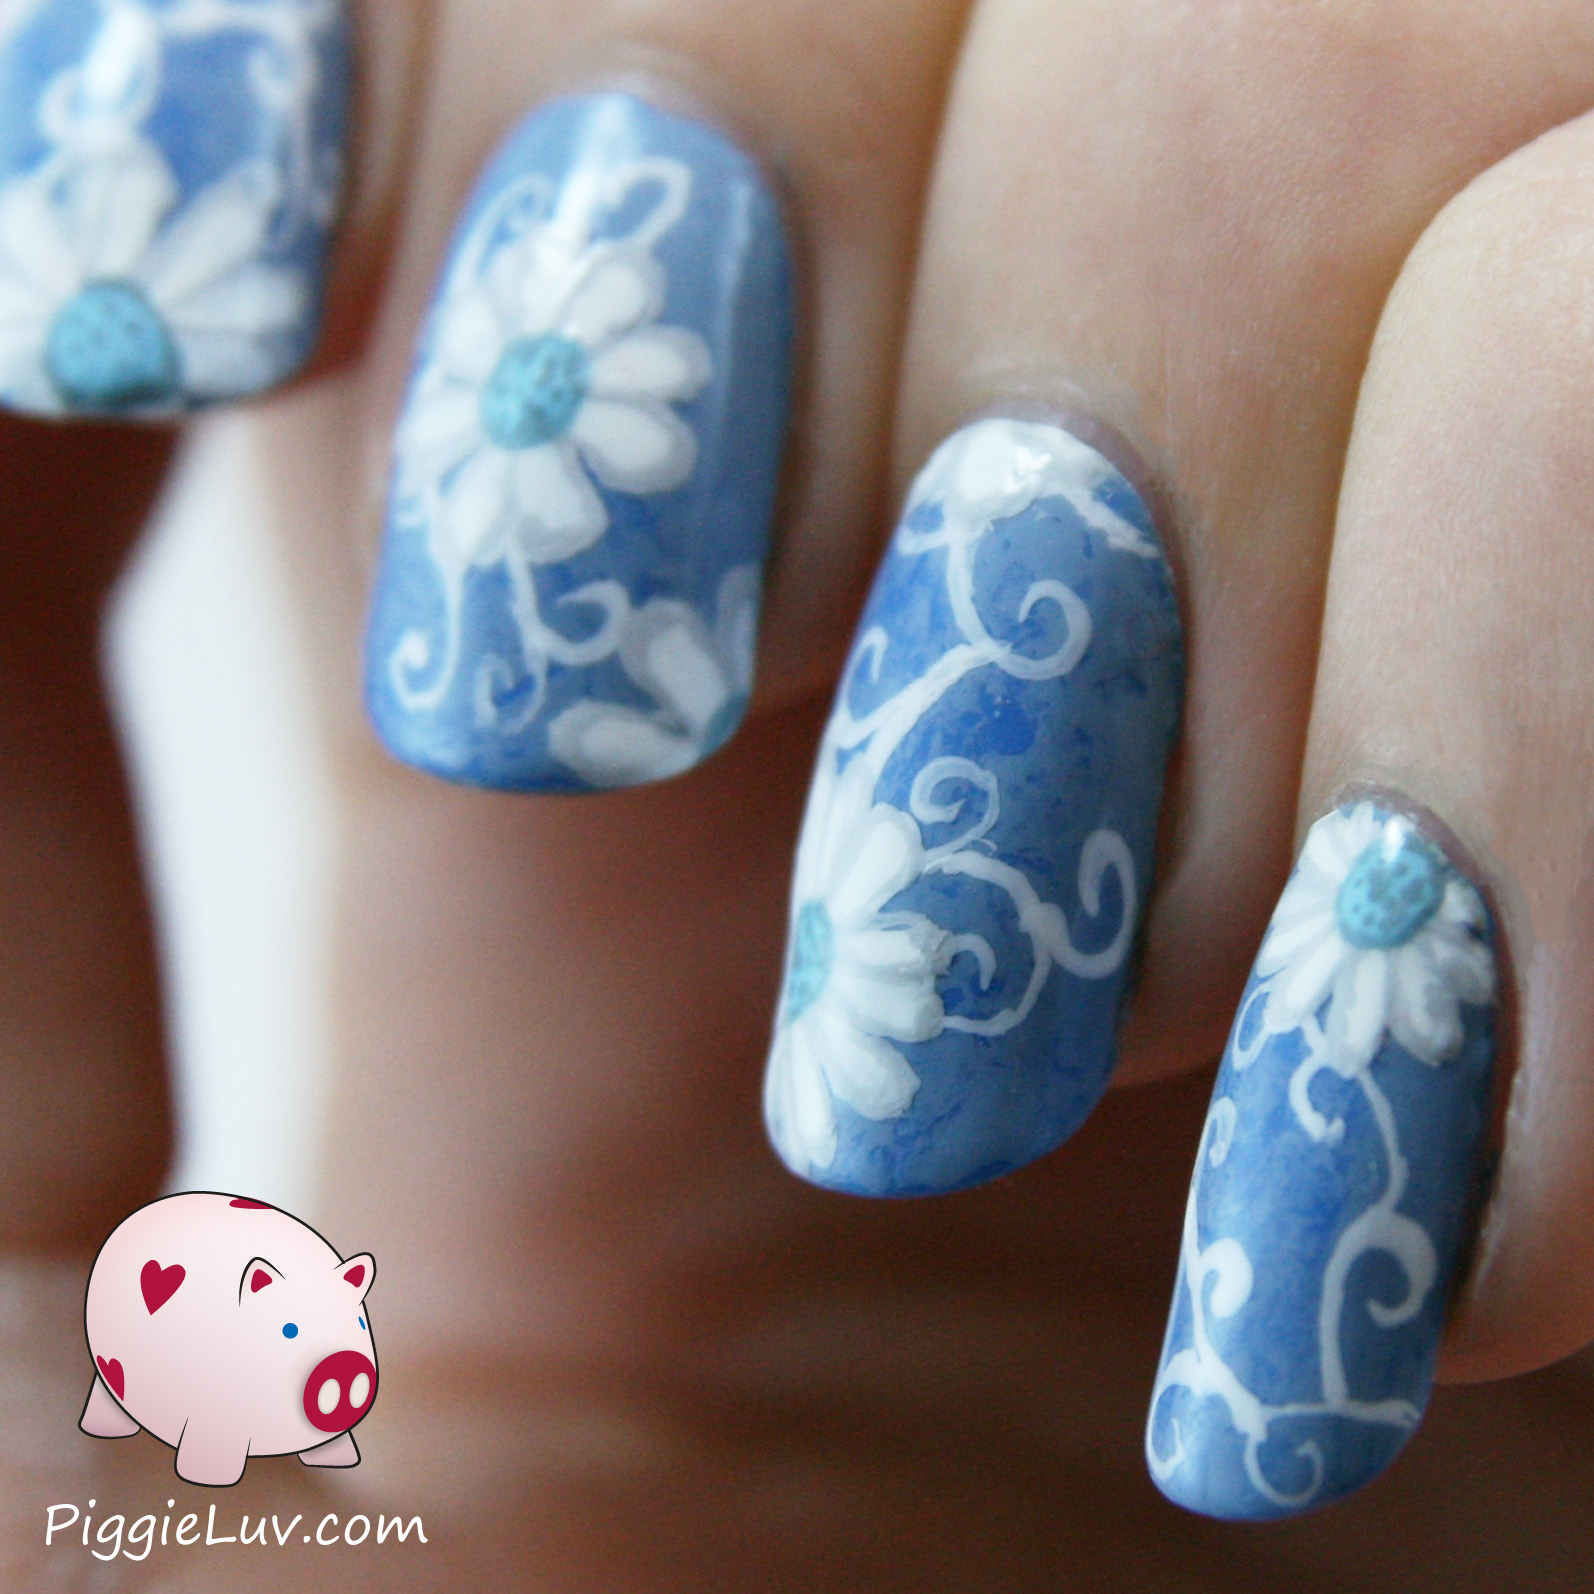 PiggieLuv: White daisies on blue nails for Autism